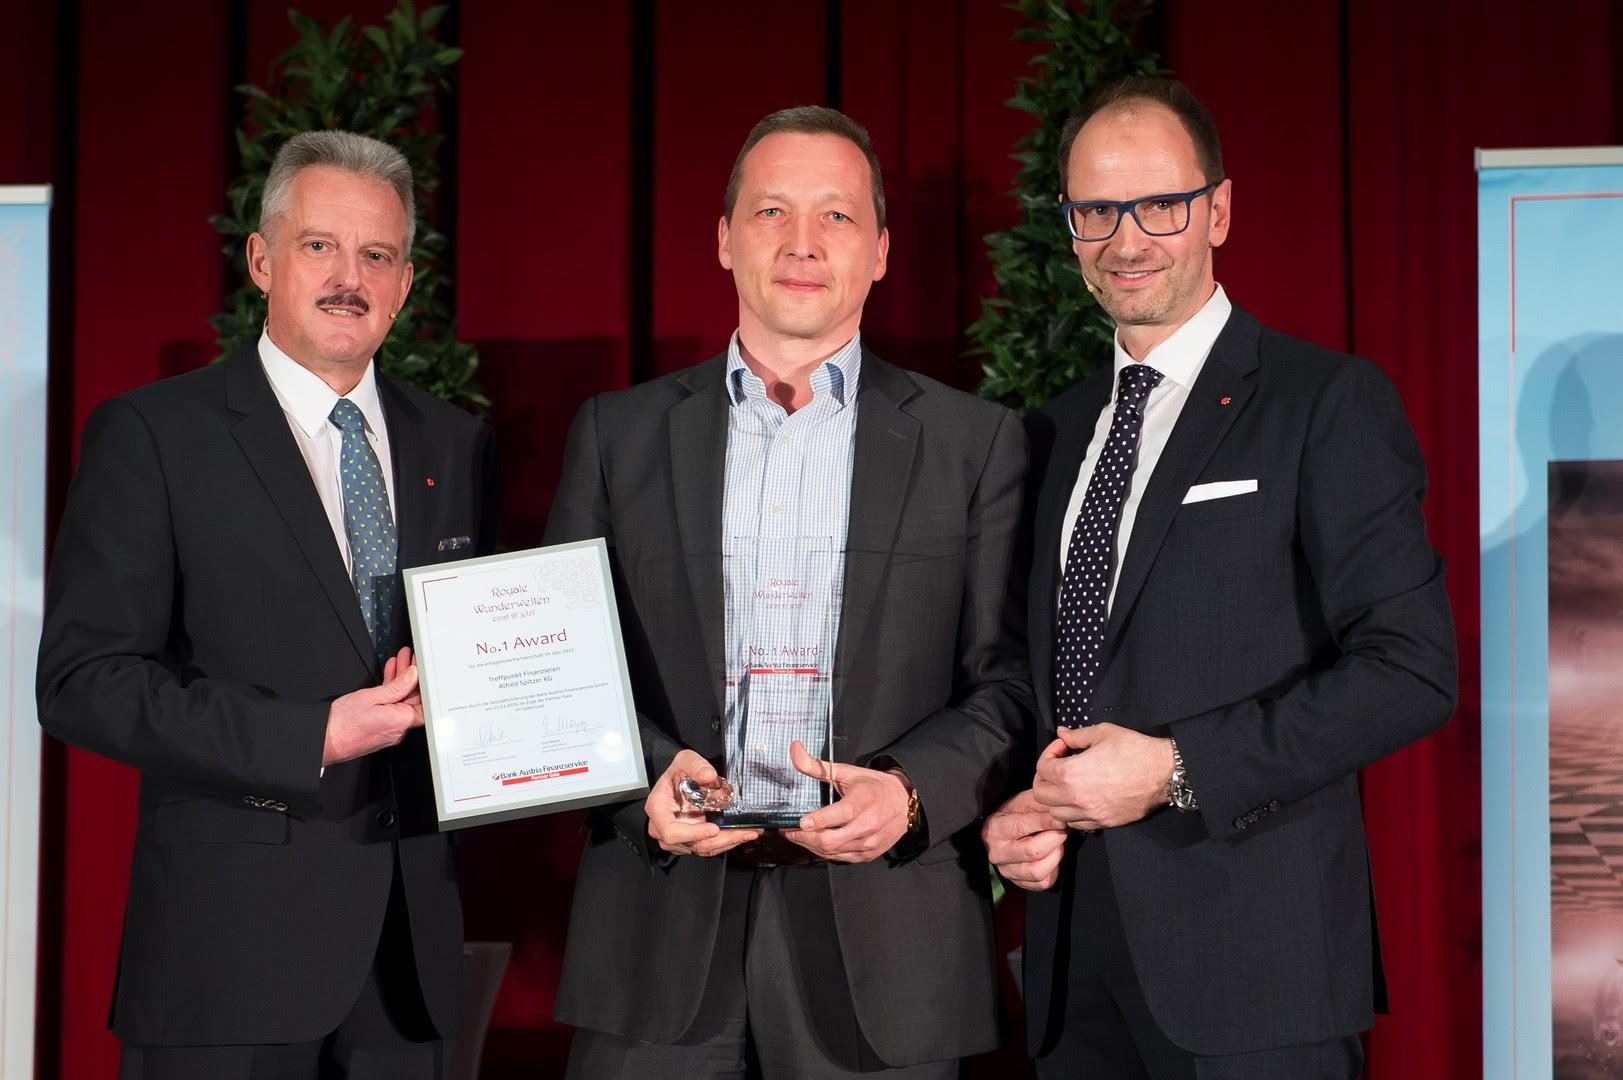 No.1 Award 2015 – Bank Austria Finanzservice